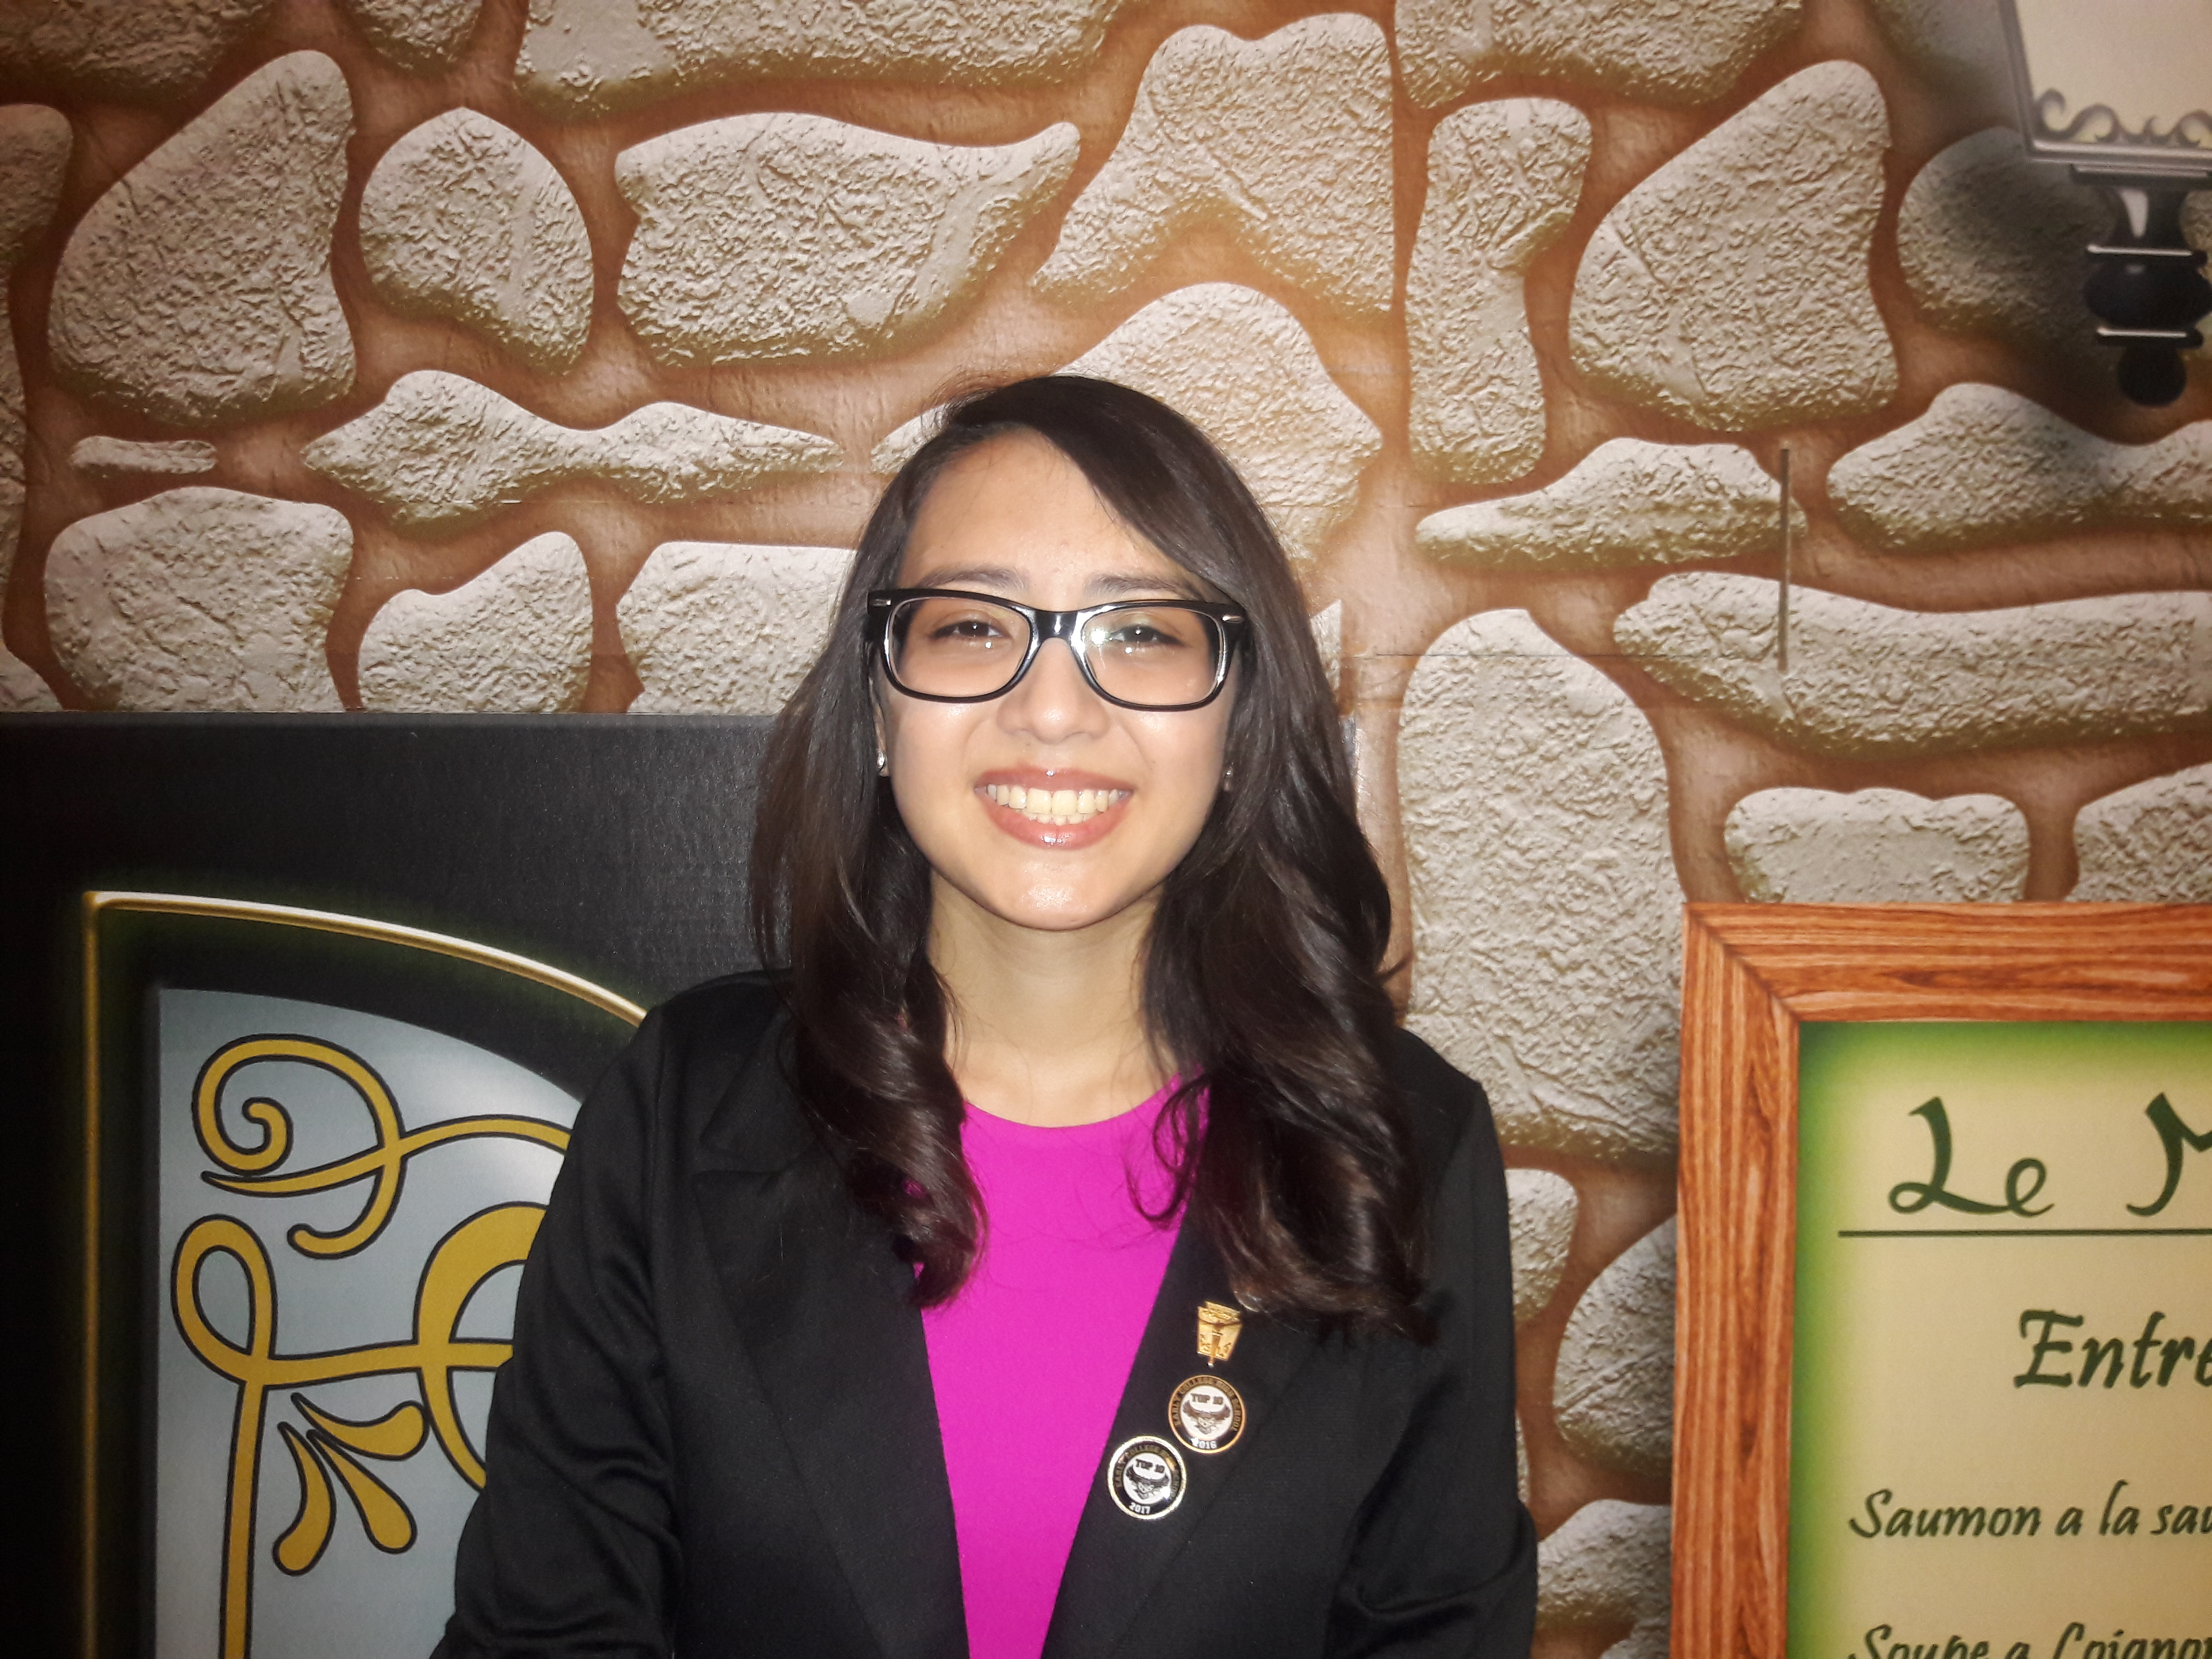 ECHS student author Katelynn Renteria receives Silver Book Award